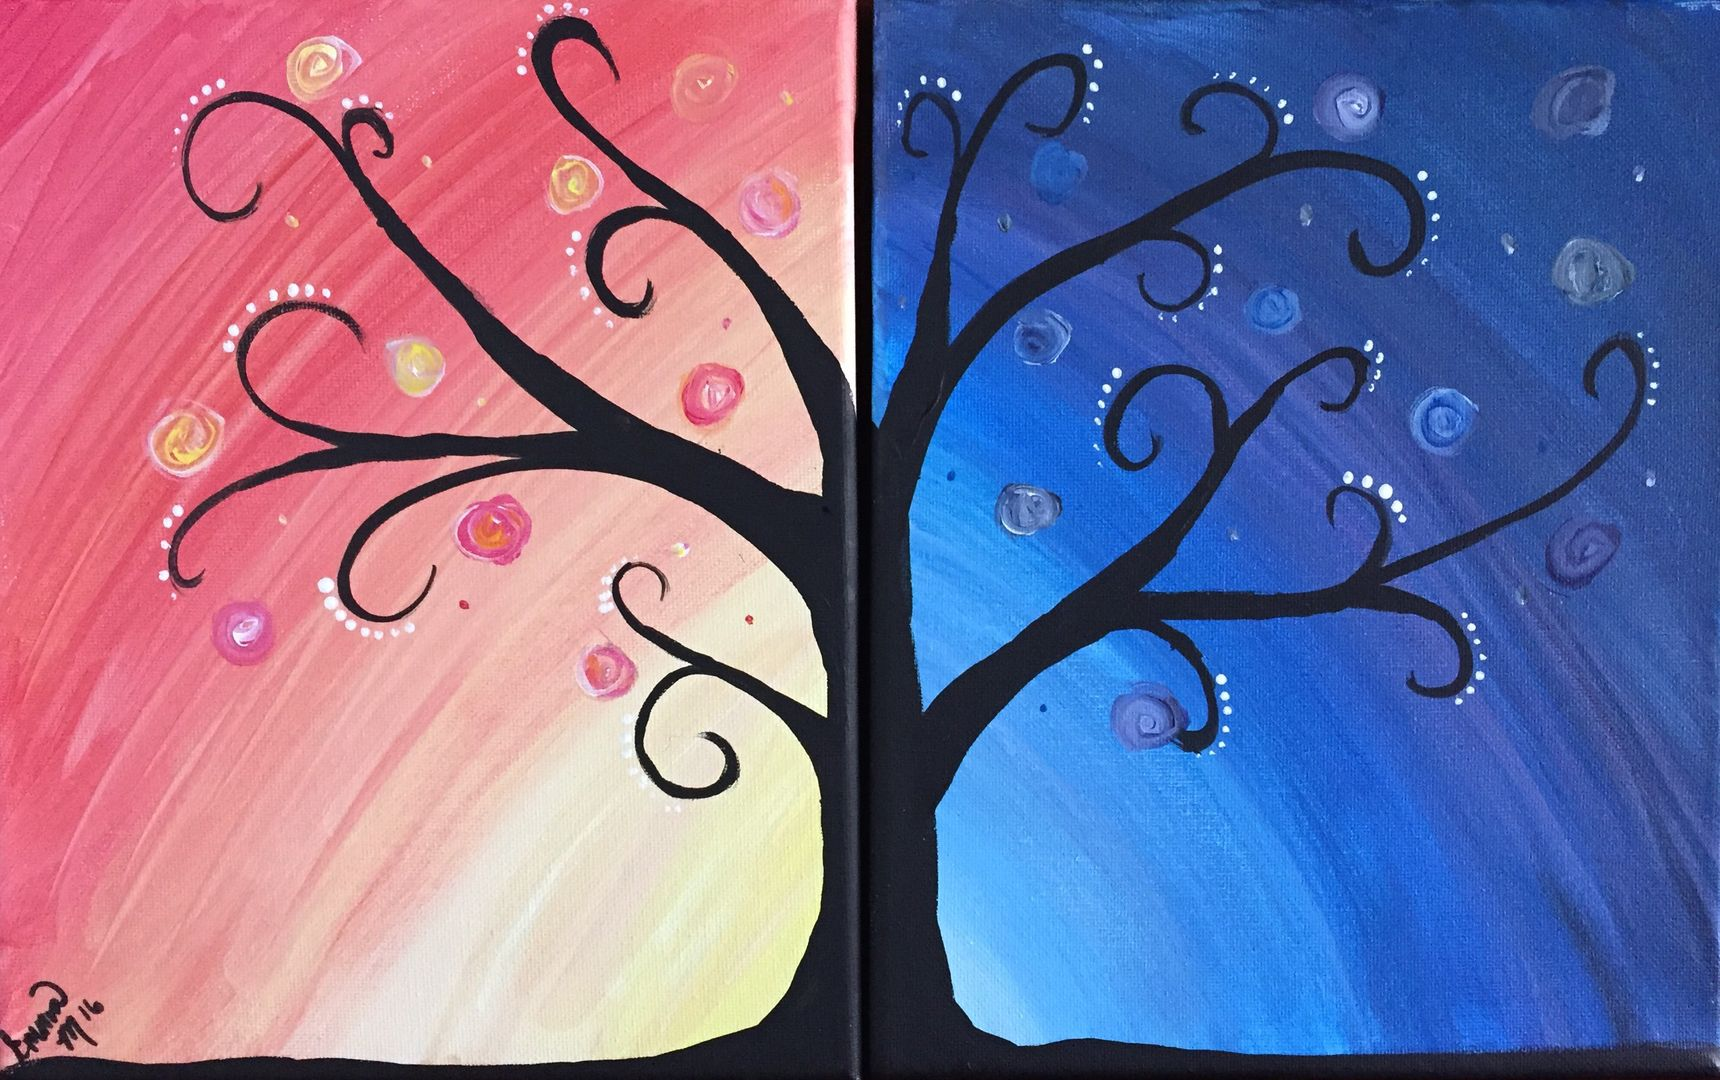 46 Trendy Painting Ideas On Canvas For Boyfriend Couple Painting Couples Canvas Painting Dubai Khalifa